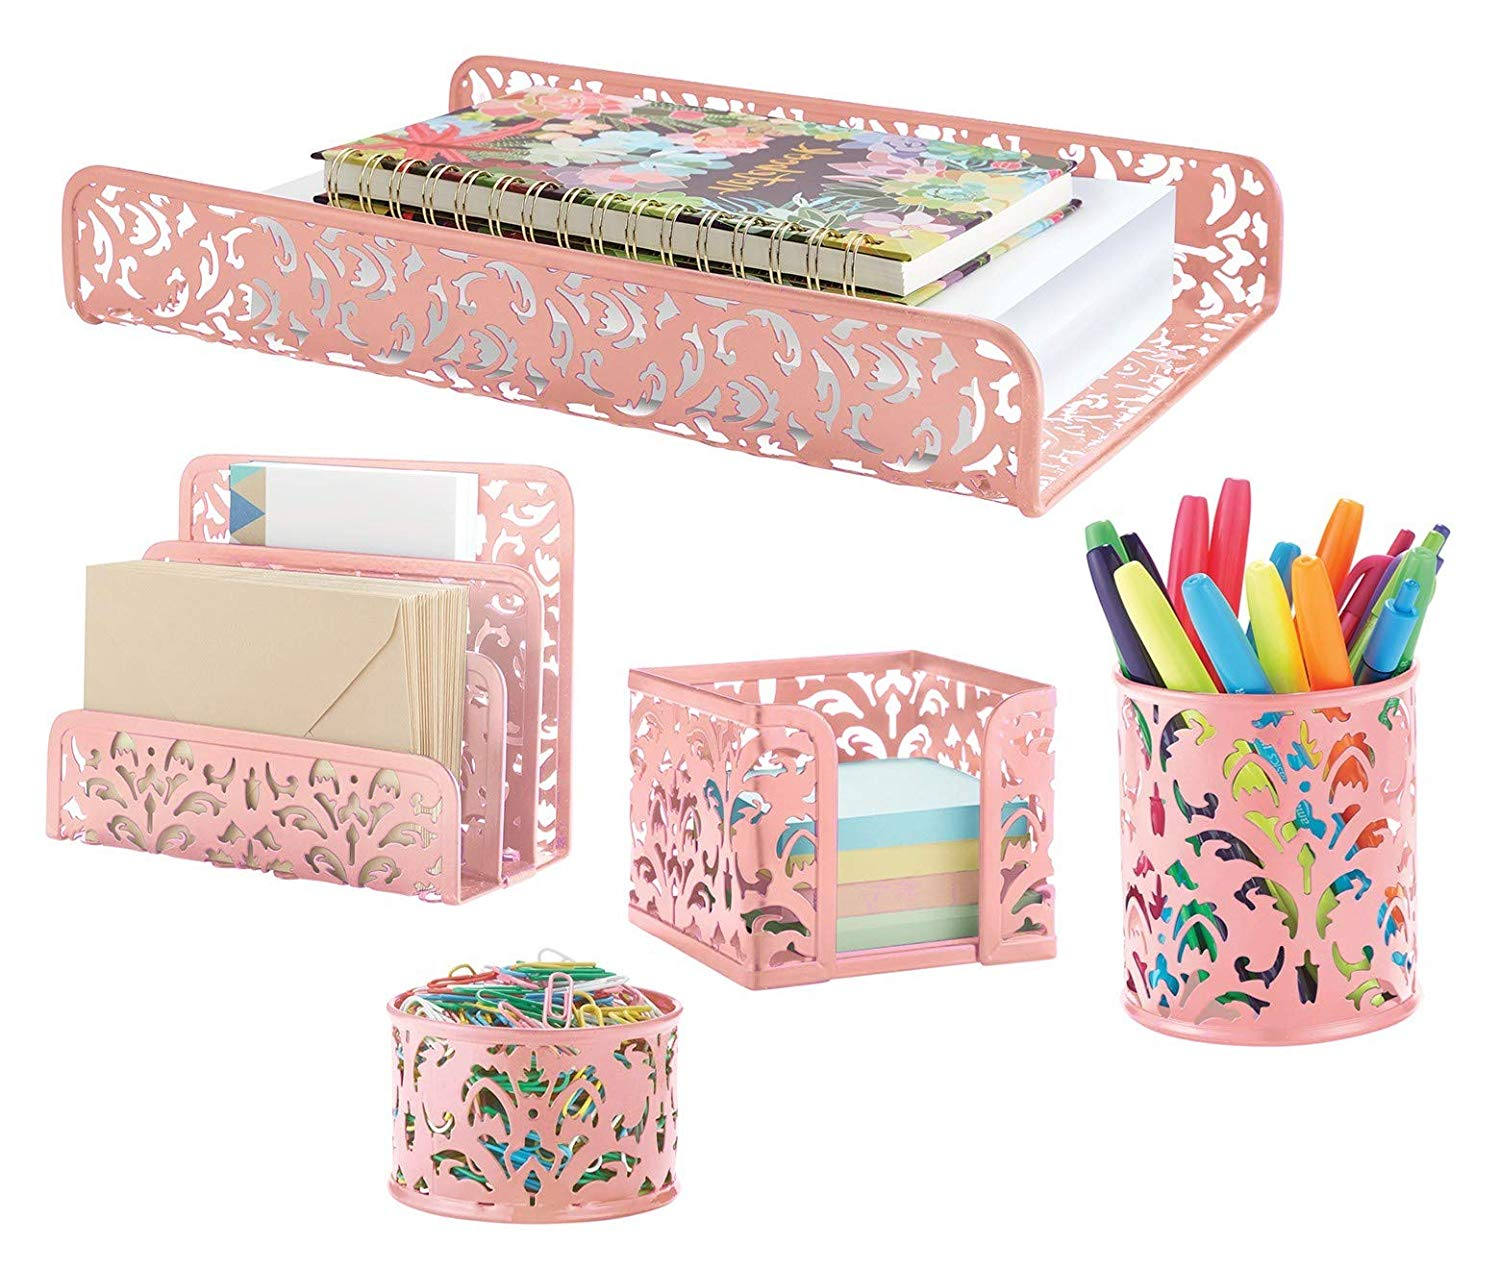 10 Chic Organizers To Keep Your Work Desk Tidy Fabfitfun